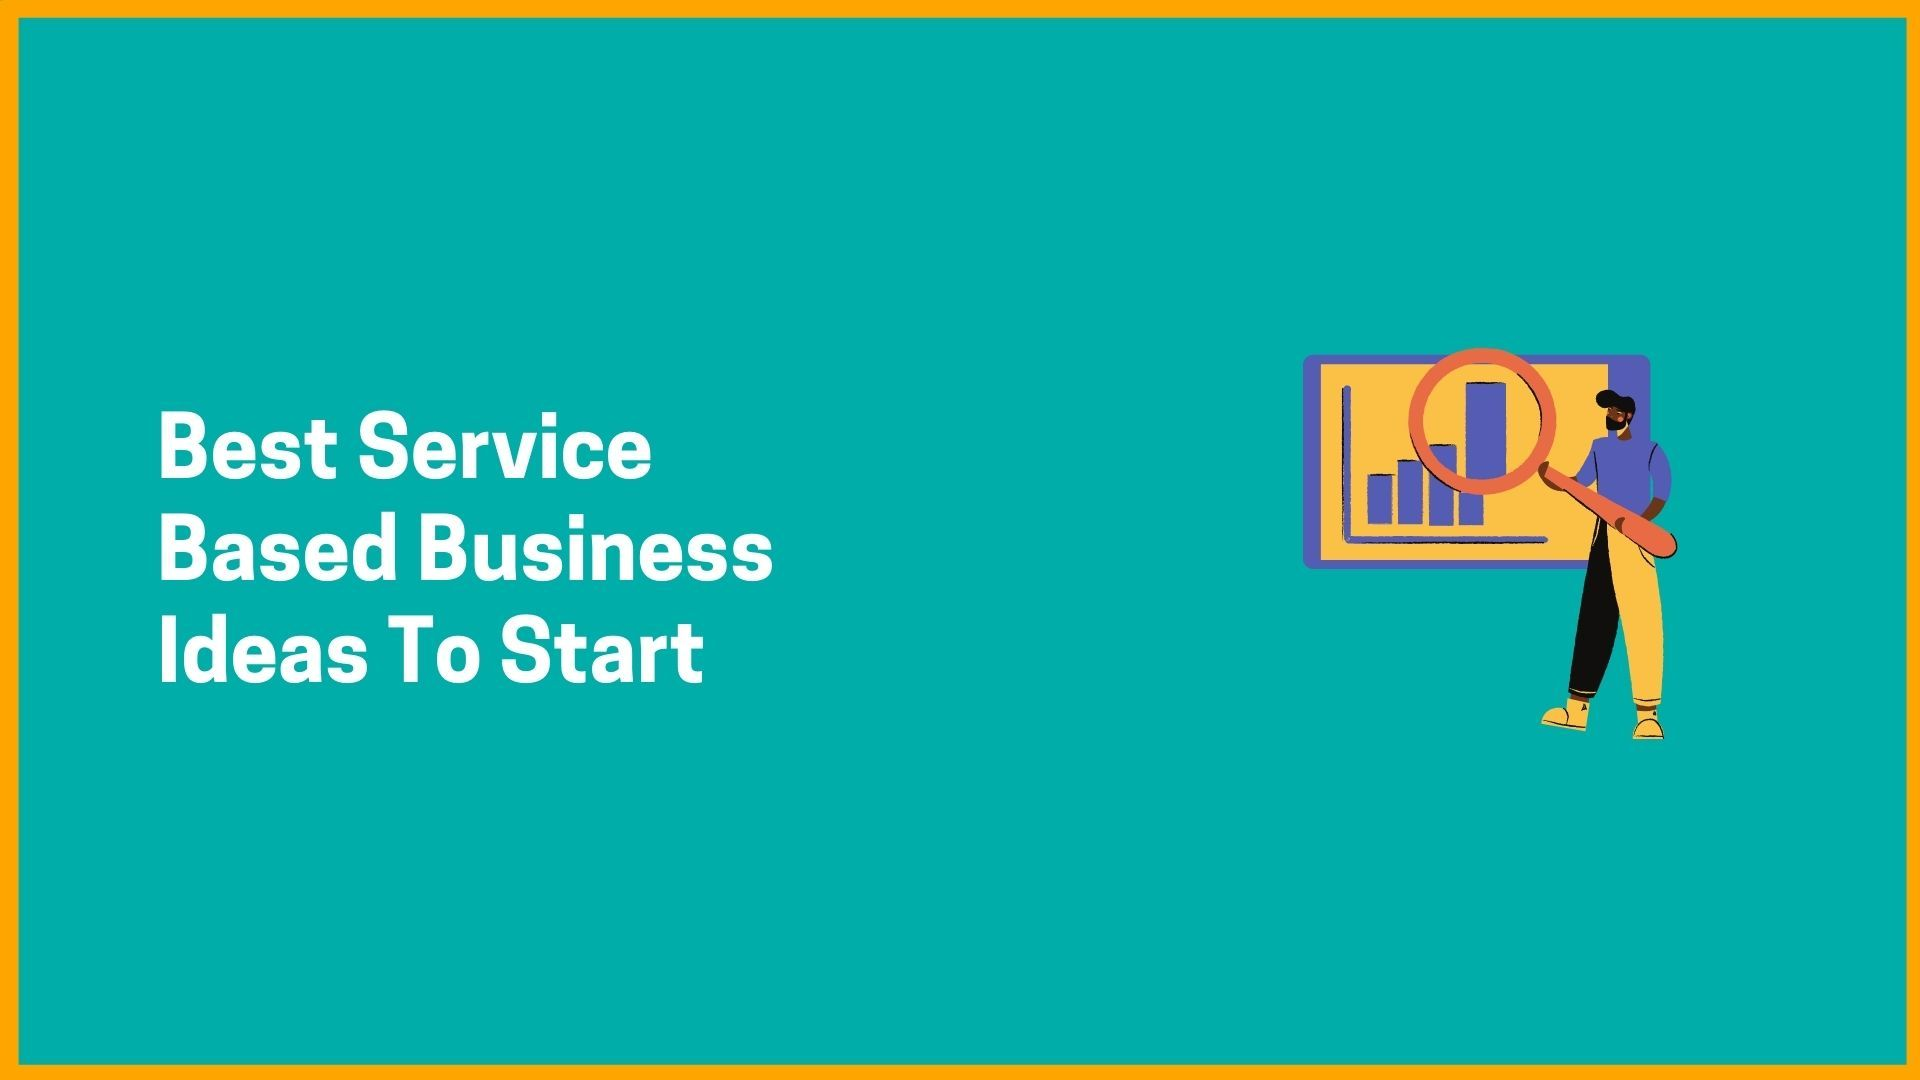 Best Service Based Business Ideas To Start